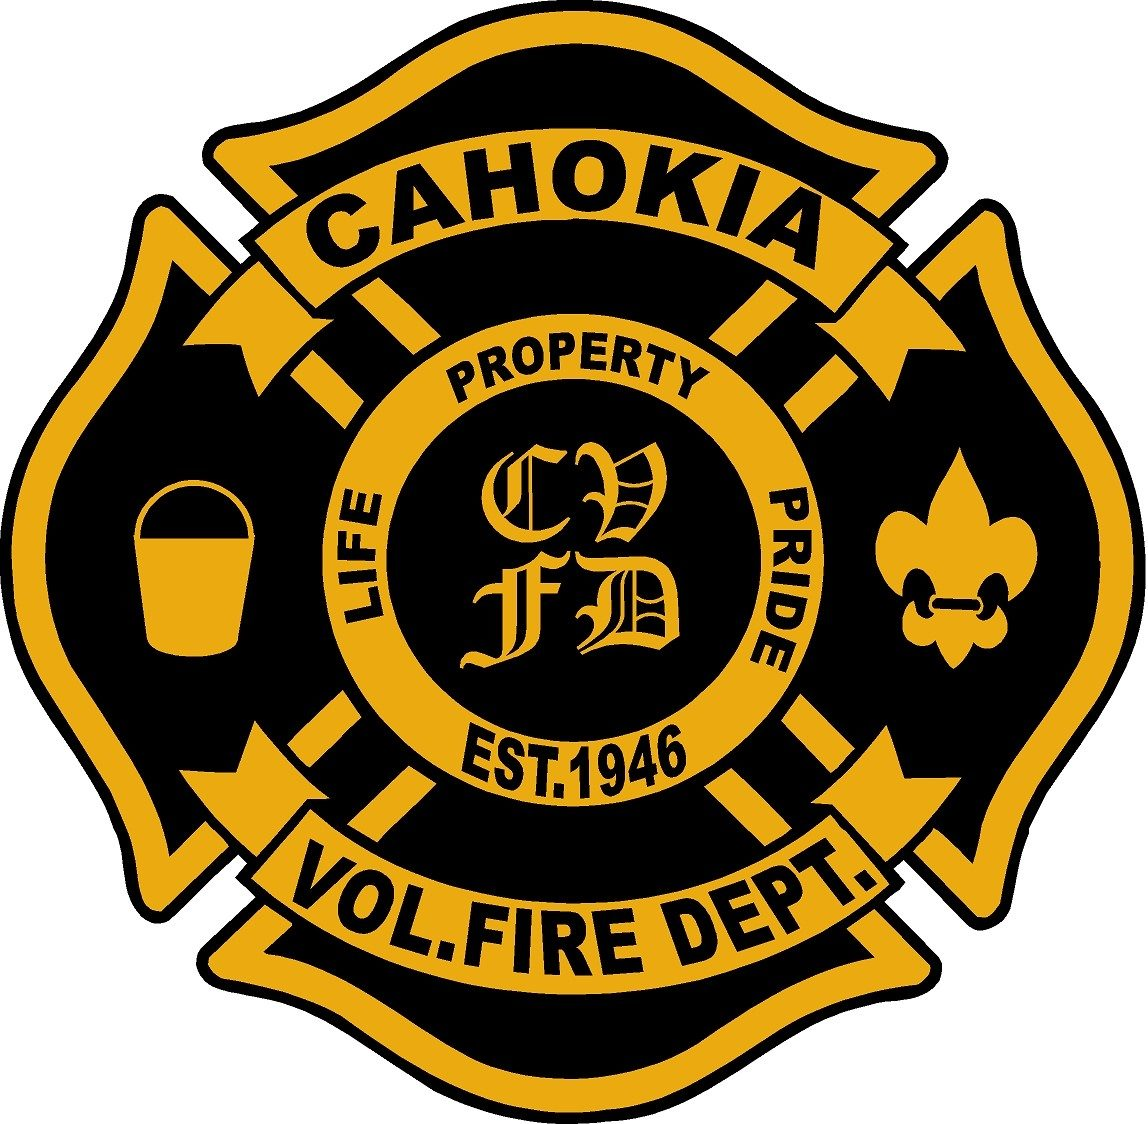 Cahokia Volunteer Fire Department